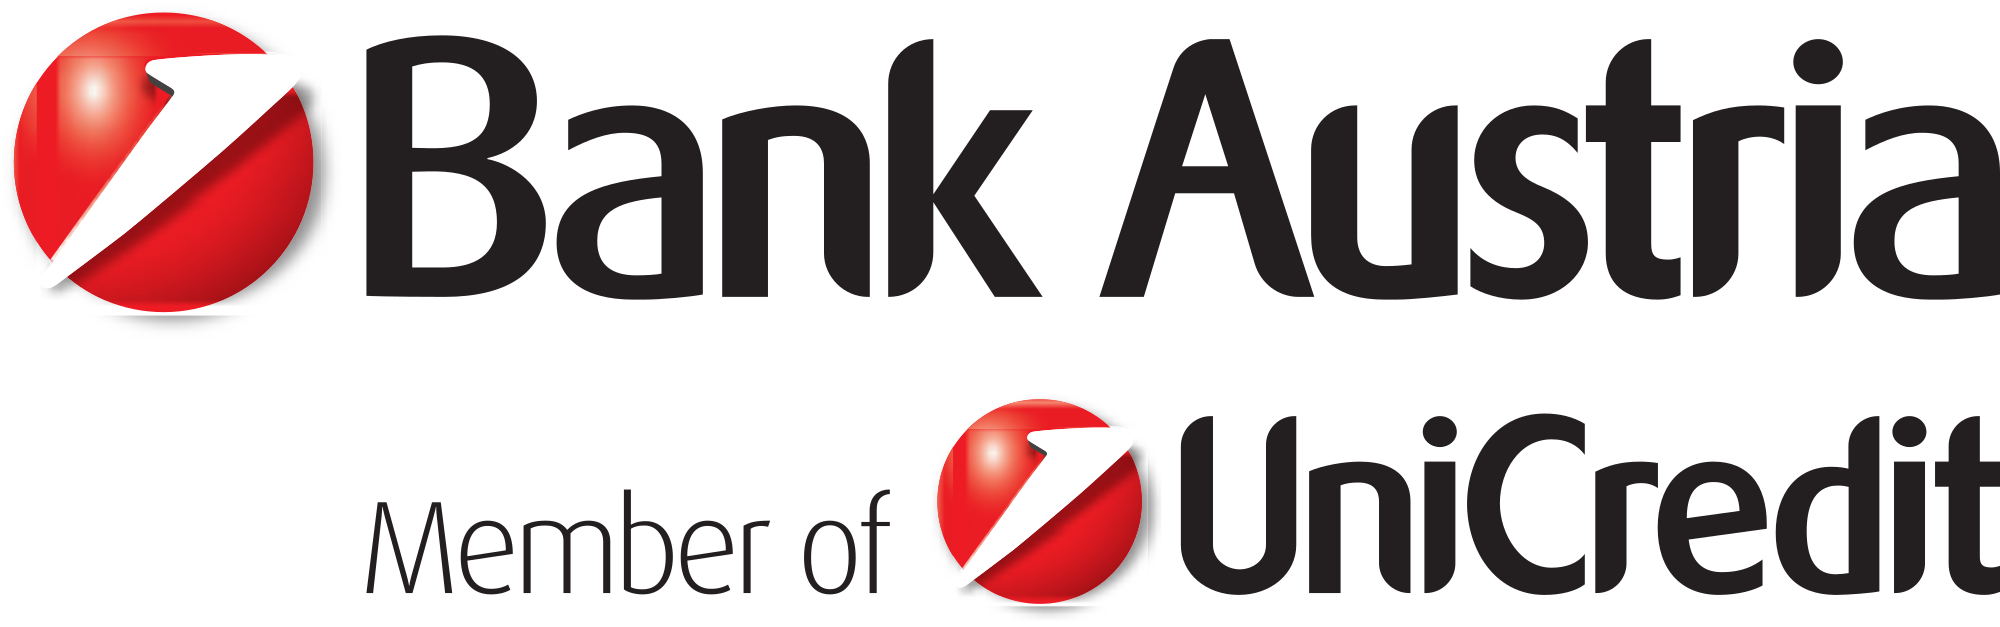 Bank Austria-Homepage